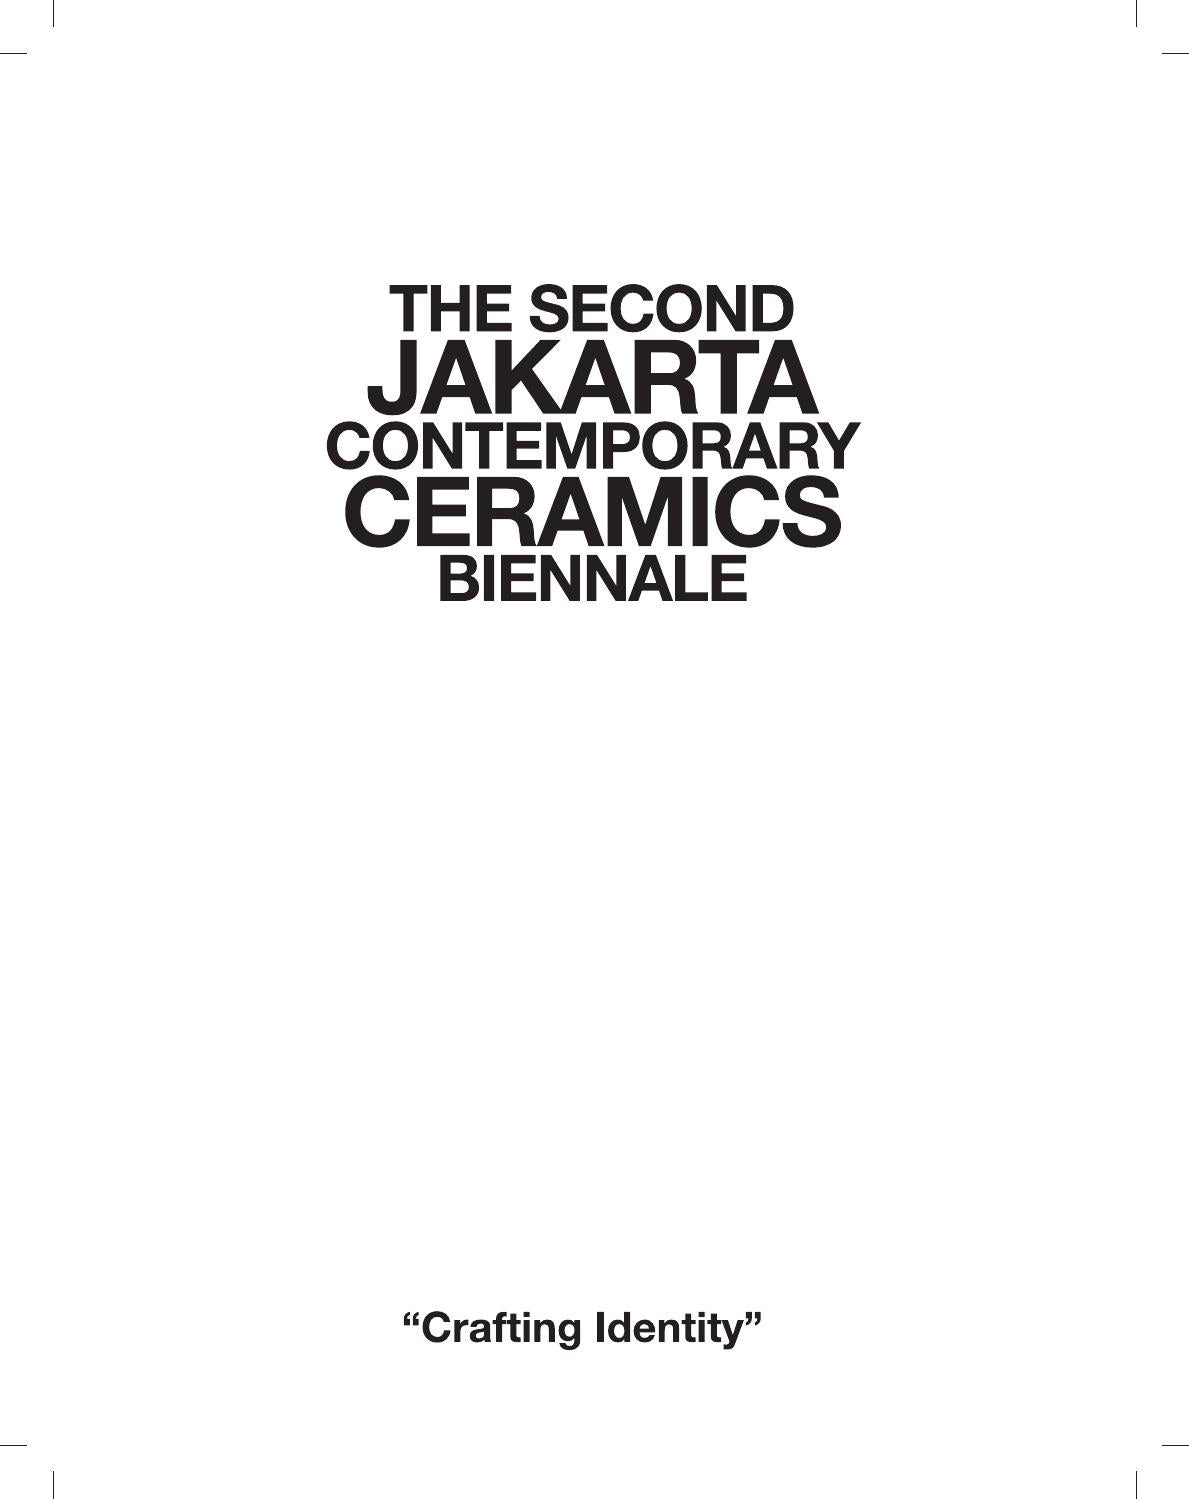 Catalogue Of The 2nd JCCB By JCCB Indonesia Issuu